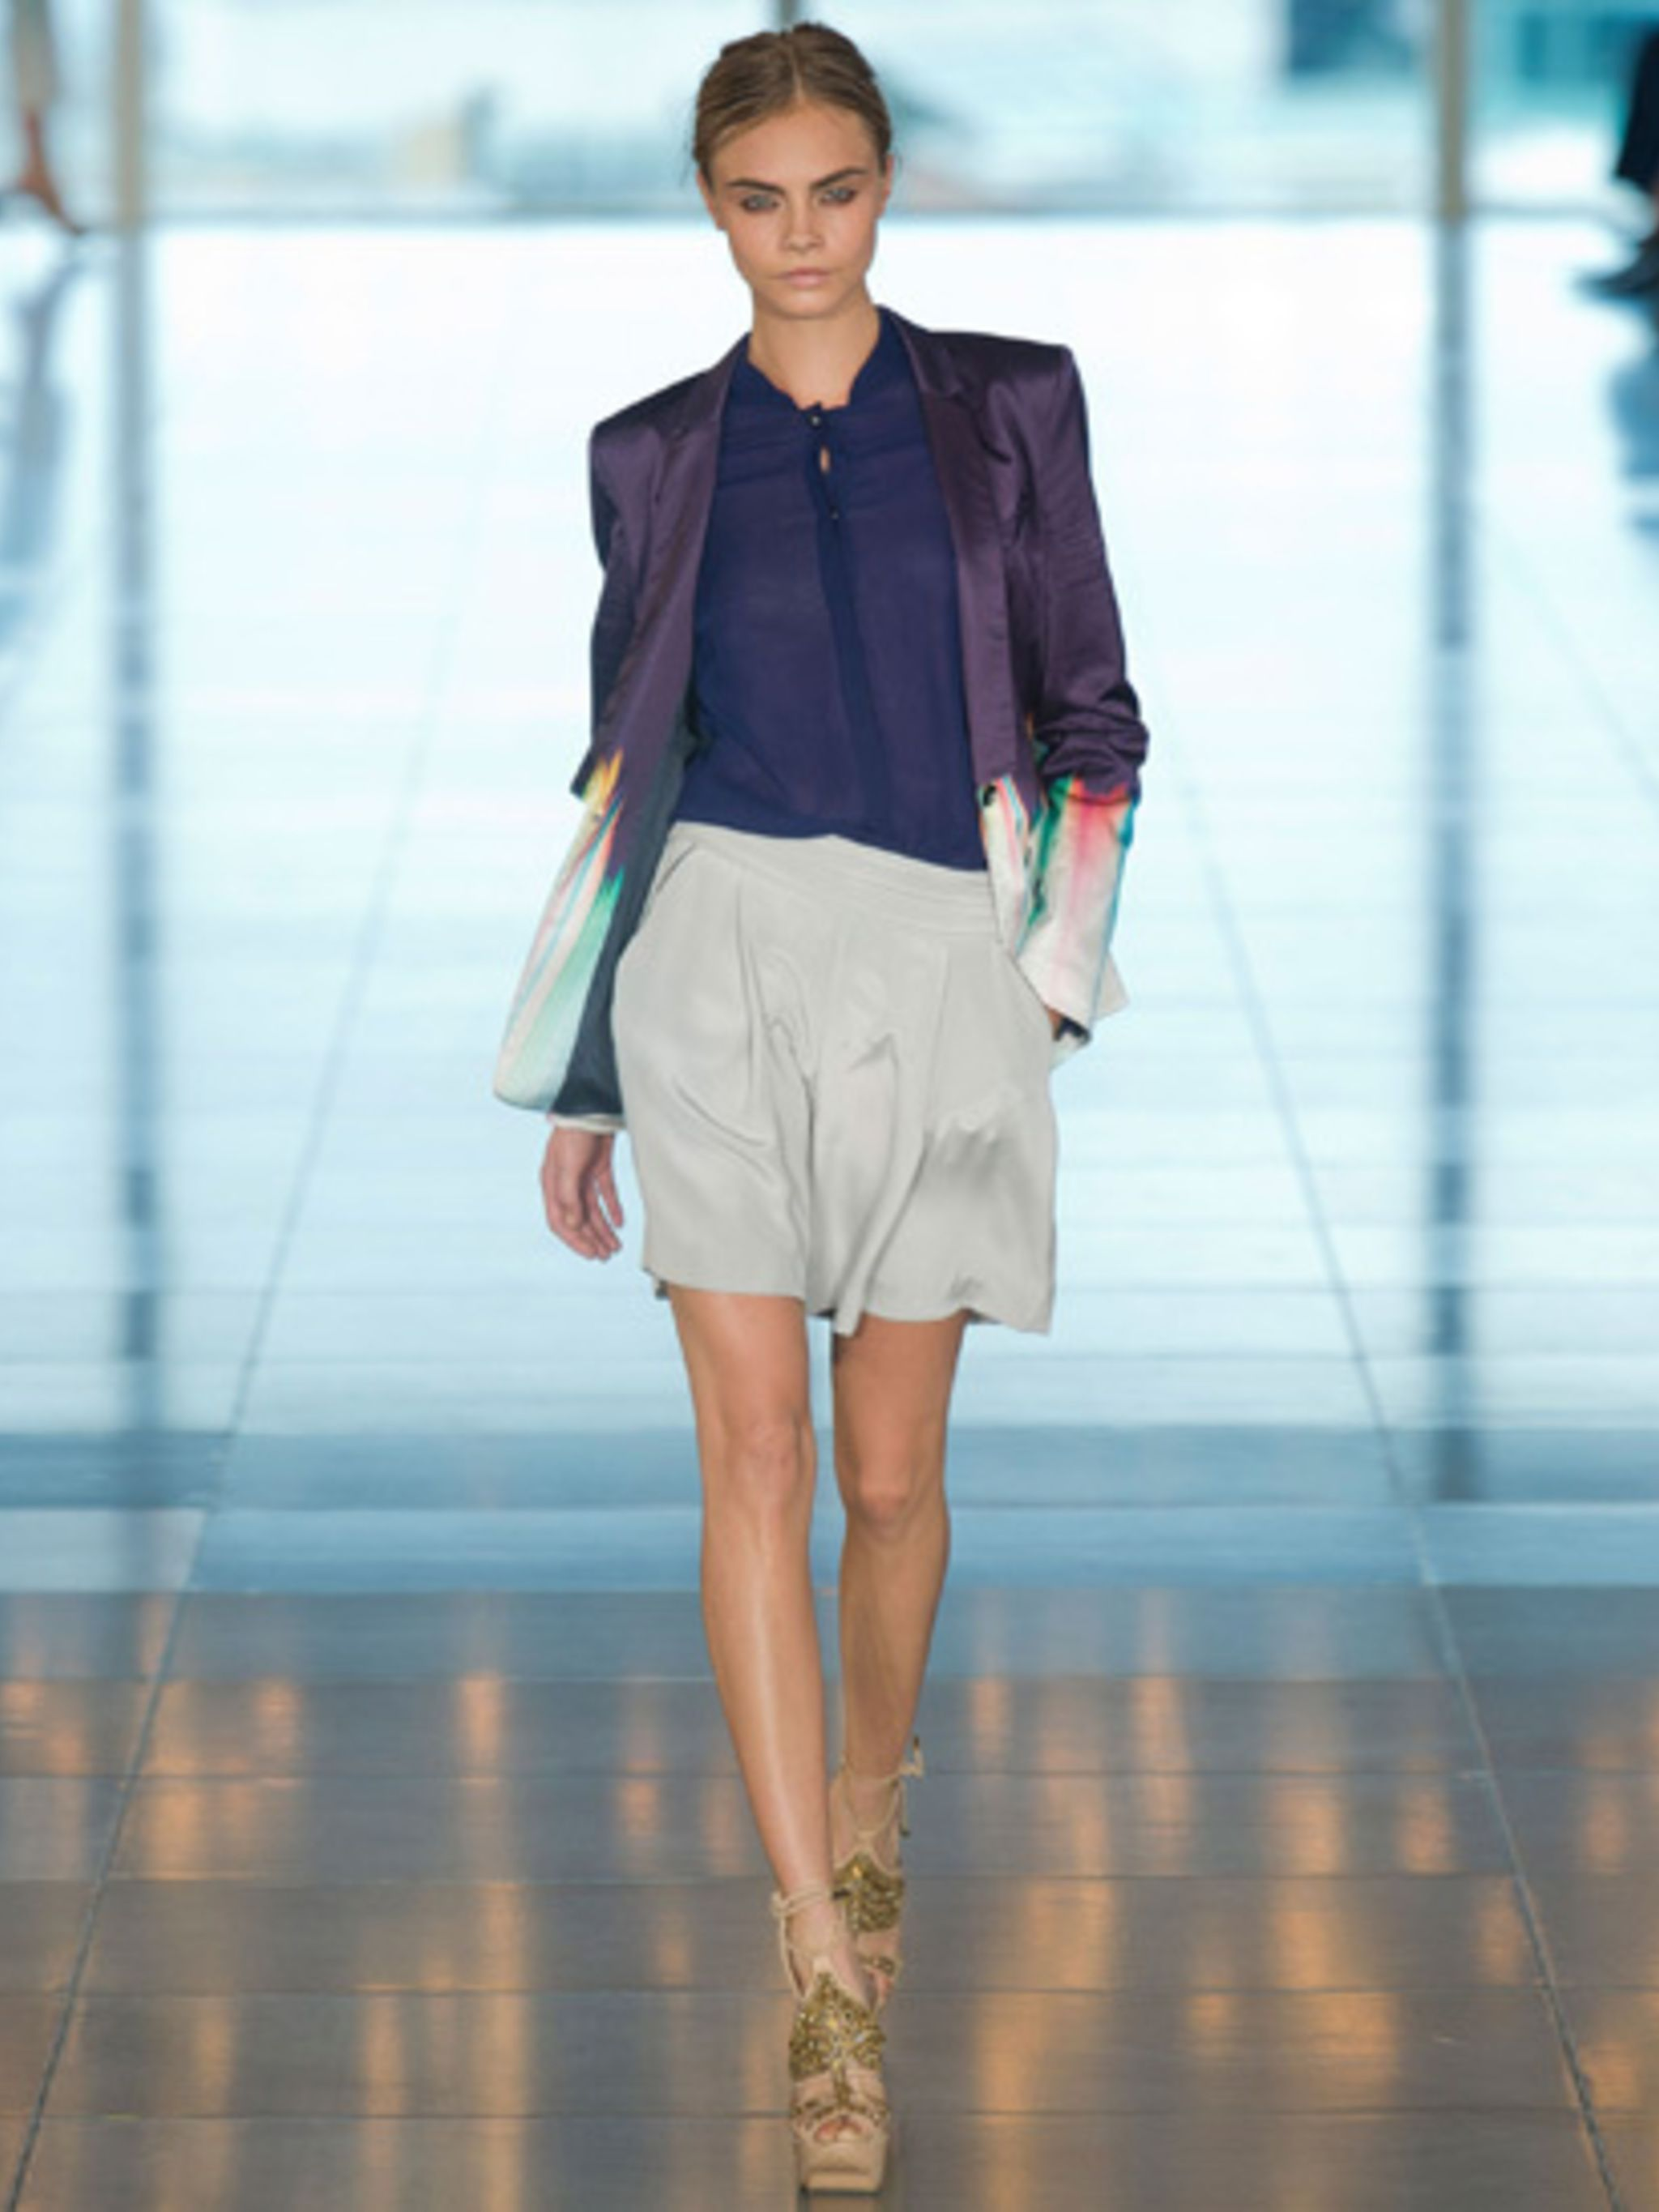 <p>A model takes to the catwalk at the Matthew Williamson SS13 show</p>